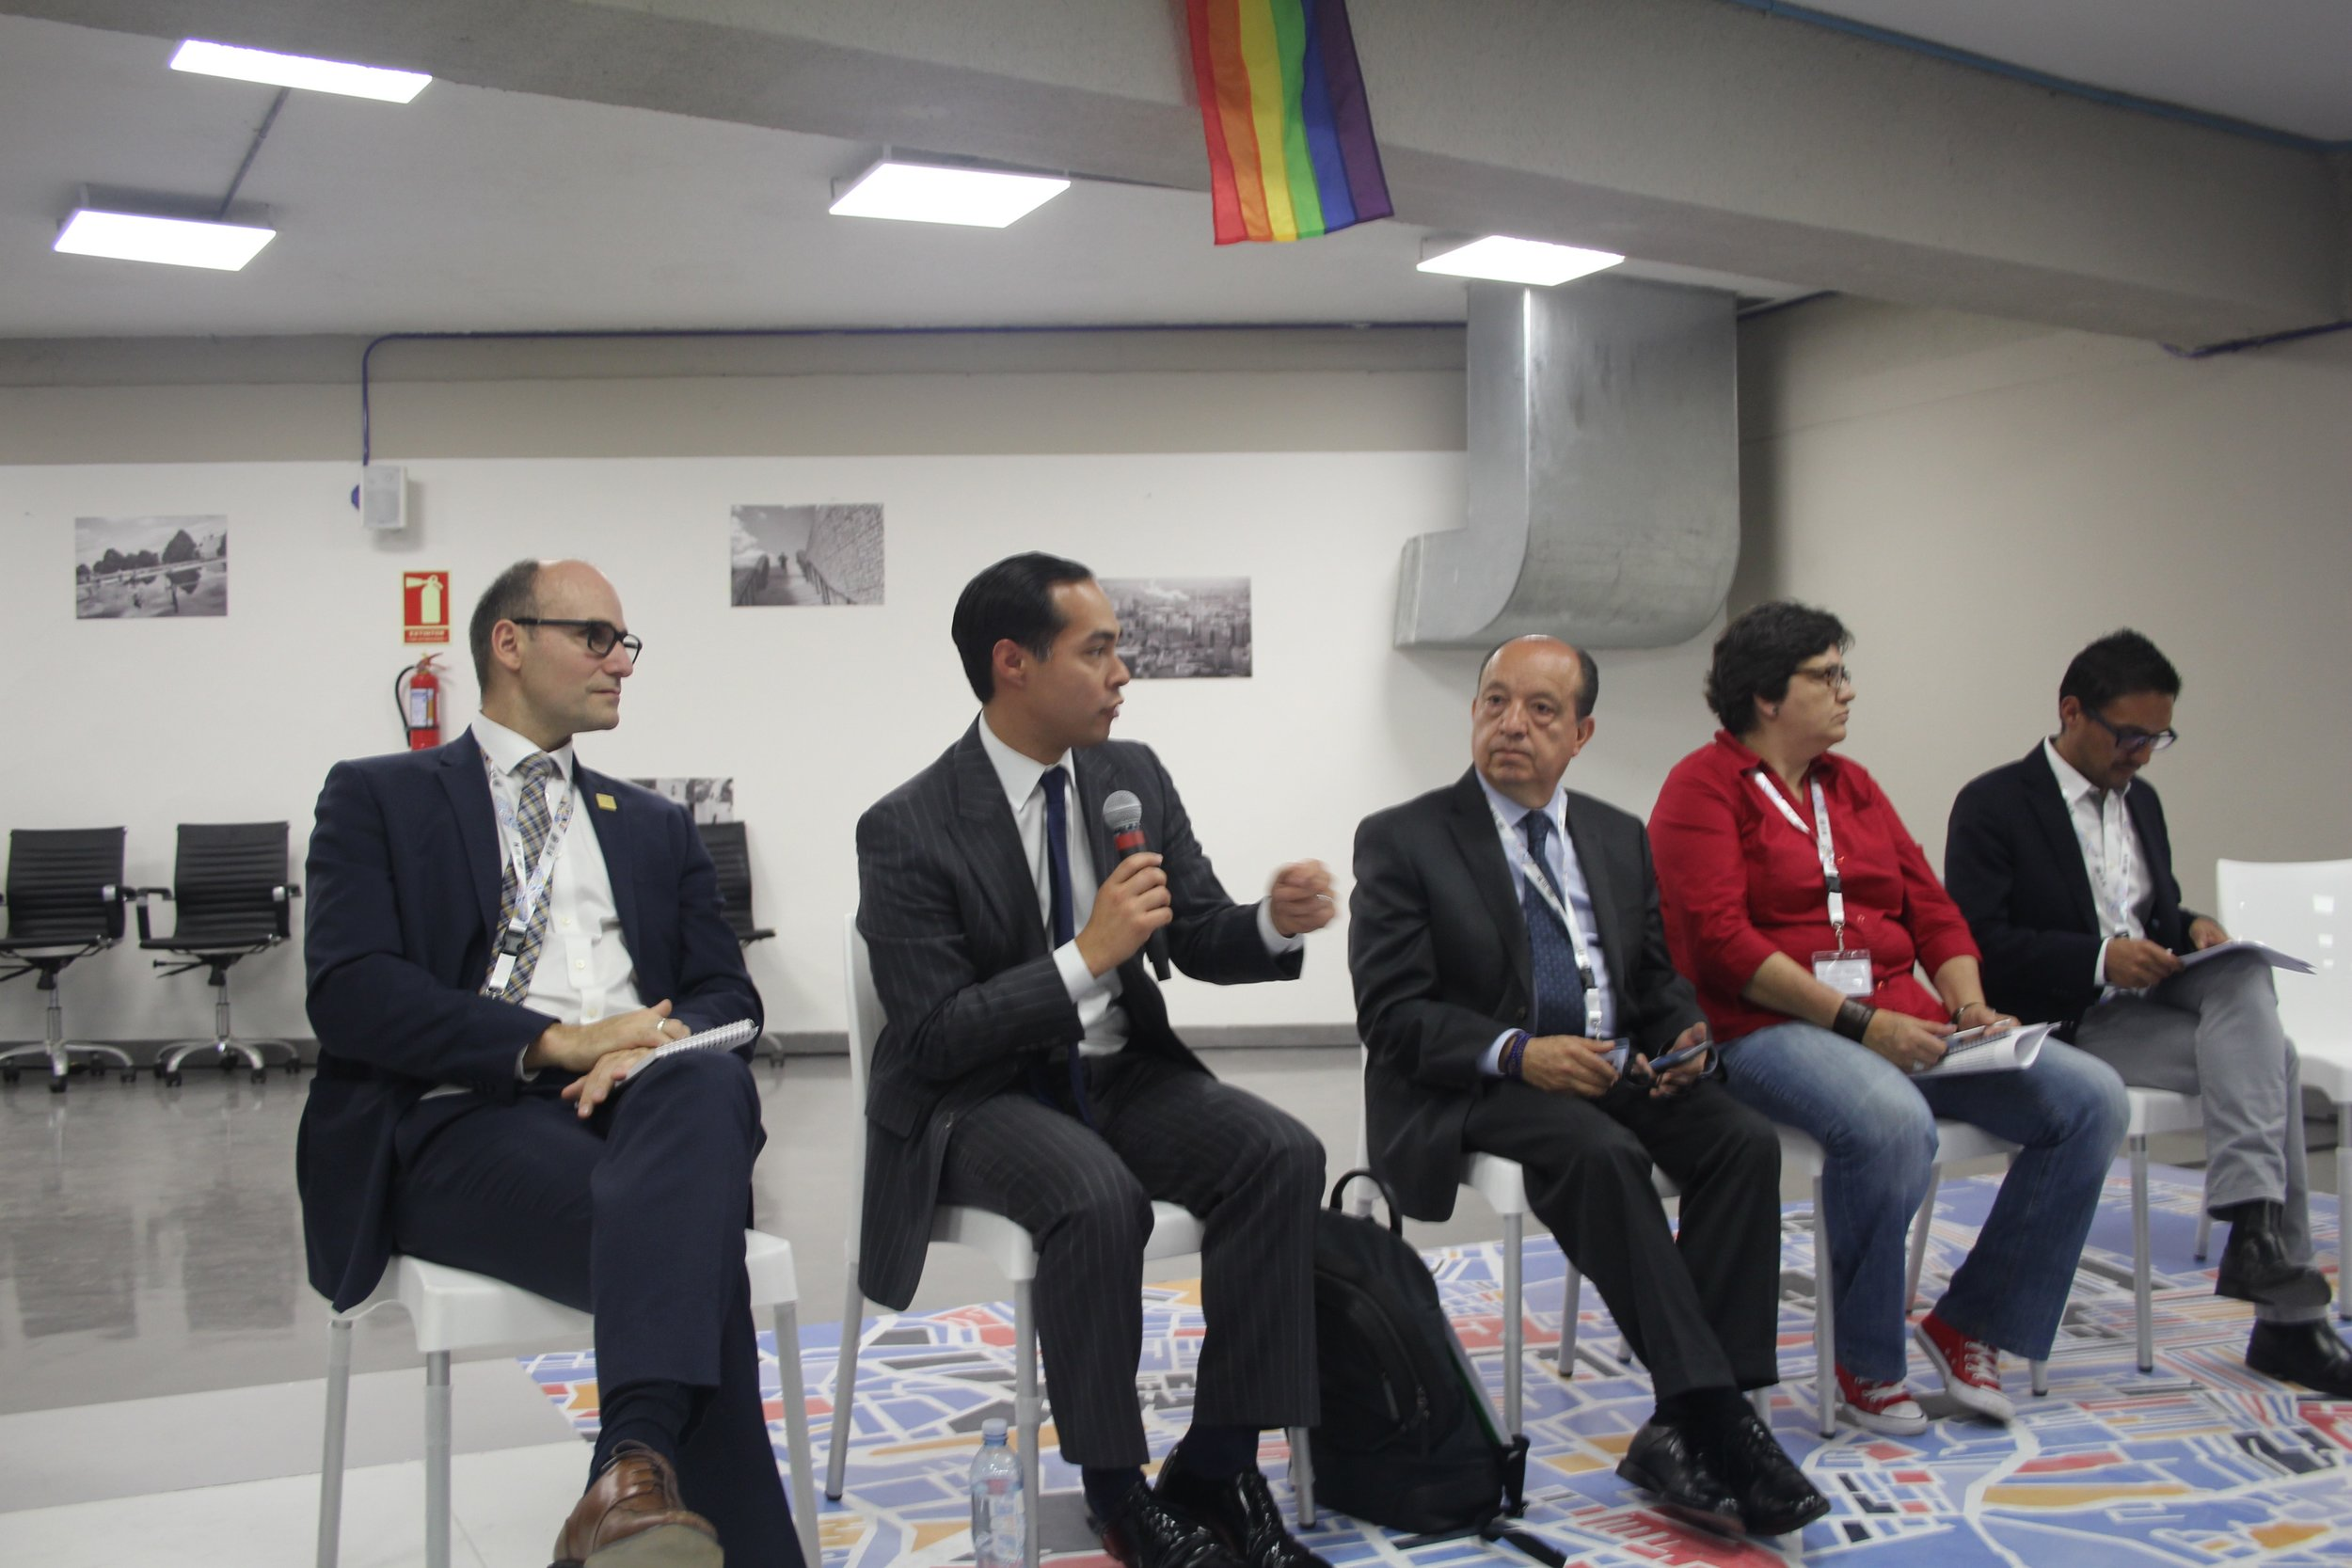 A panel on LGBT inclusion in the New Urban Agenda.